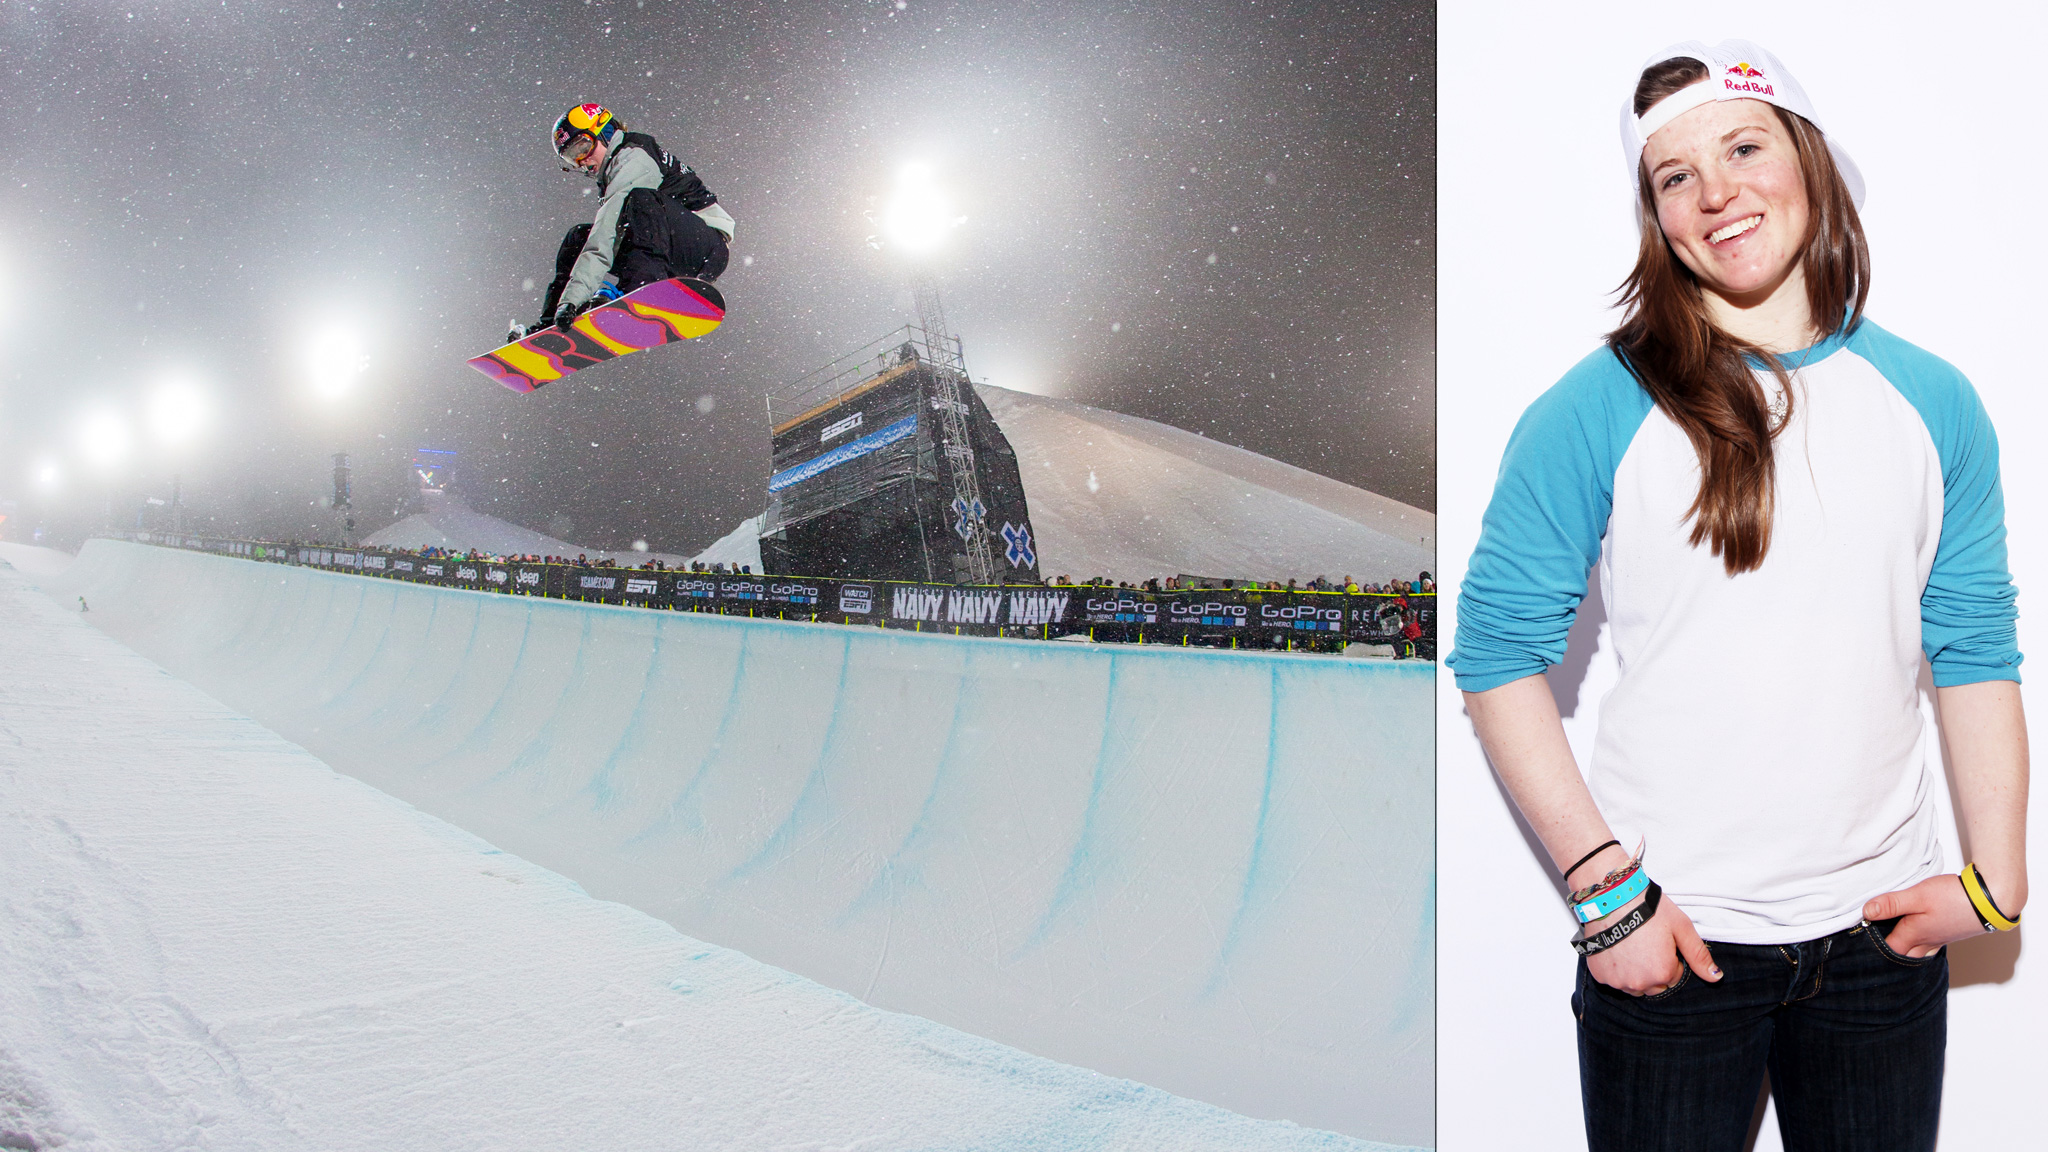 Welcome to the future of women's halfpipe snowboarding.